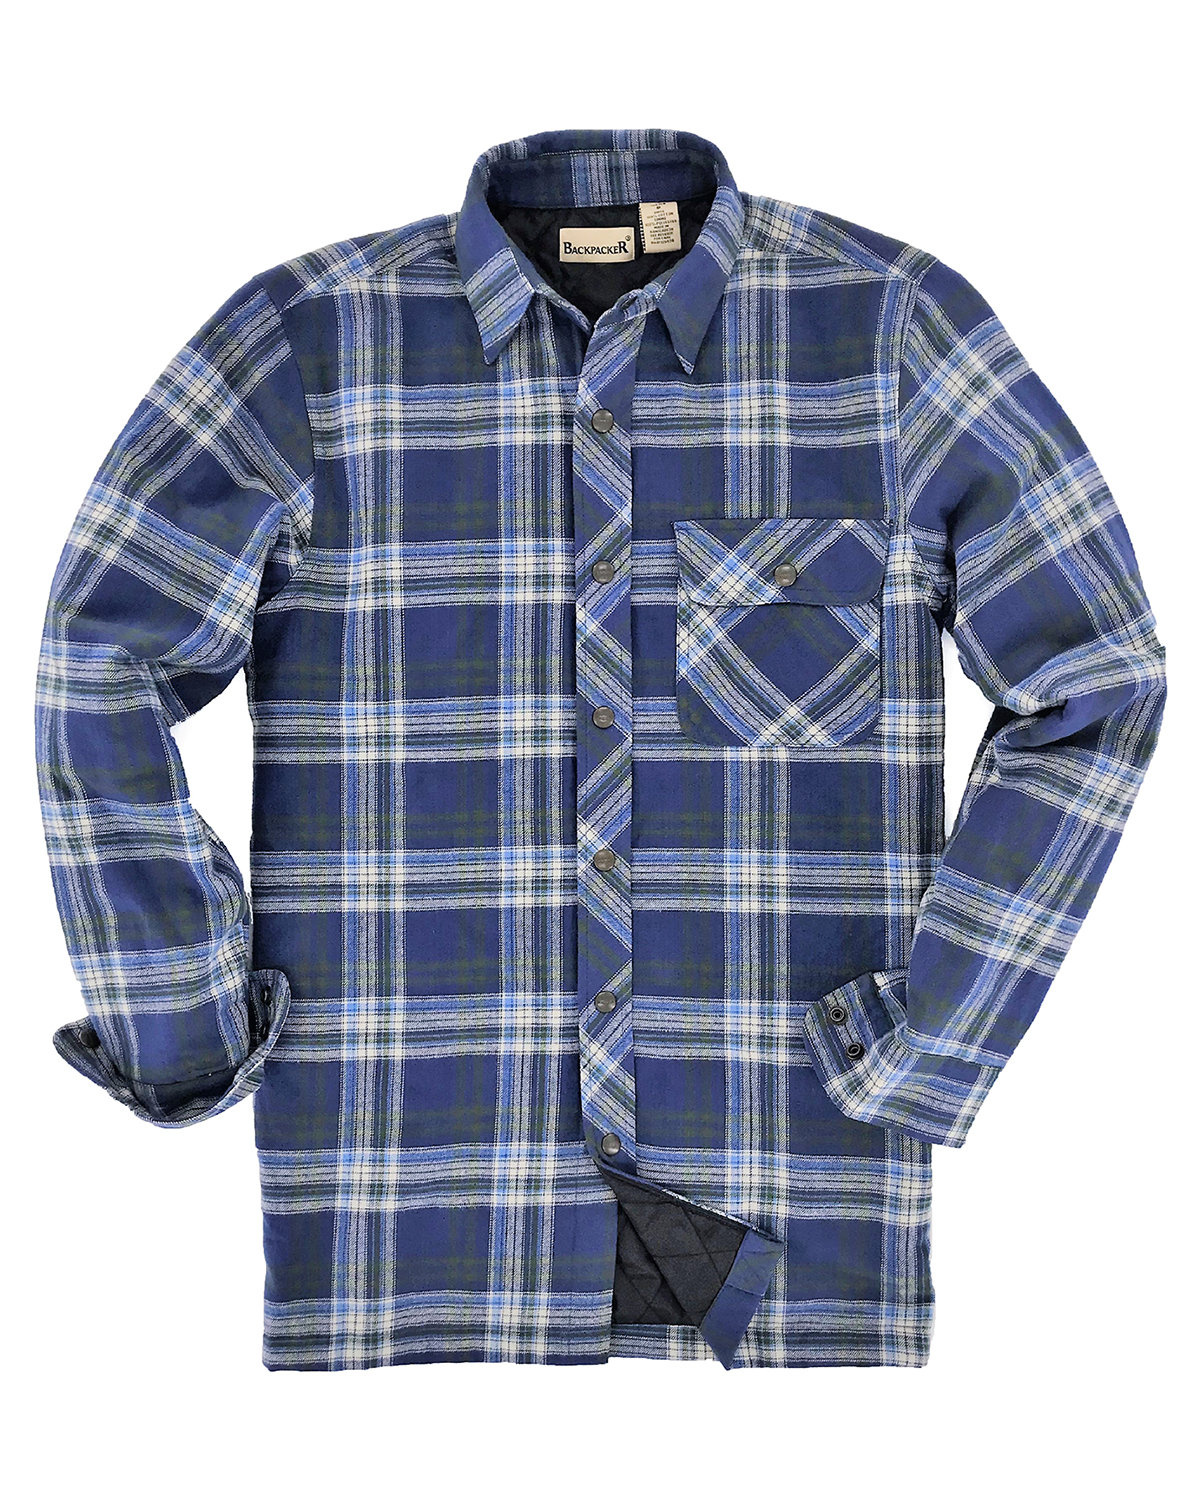 Backpacker Men's Flannel Shirt Jacket with Quilt Lining BLUE/ GREEN